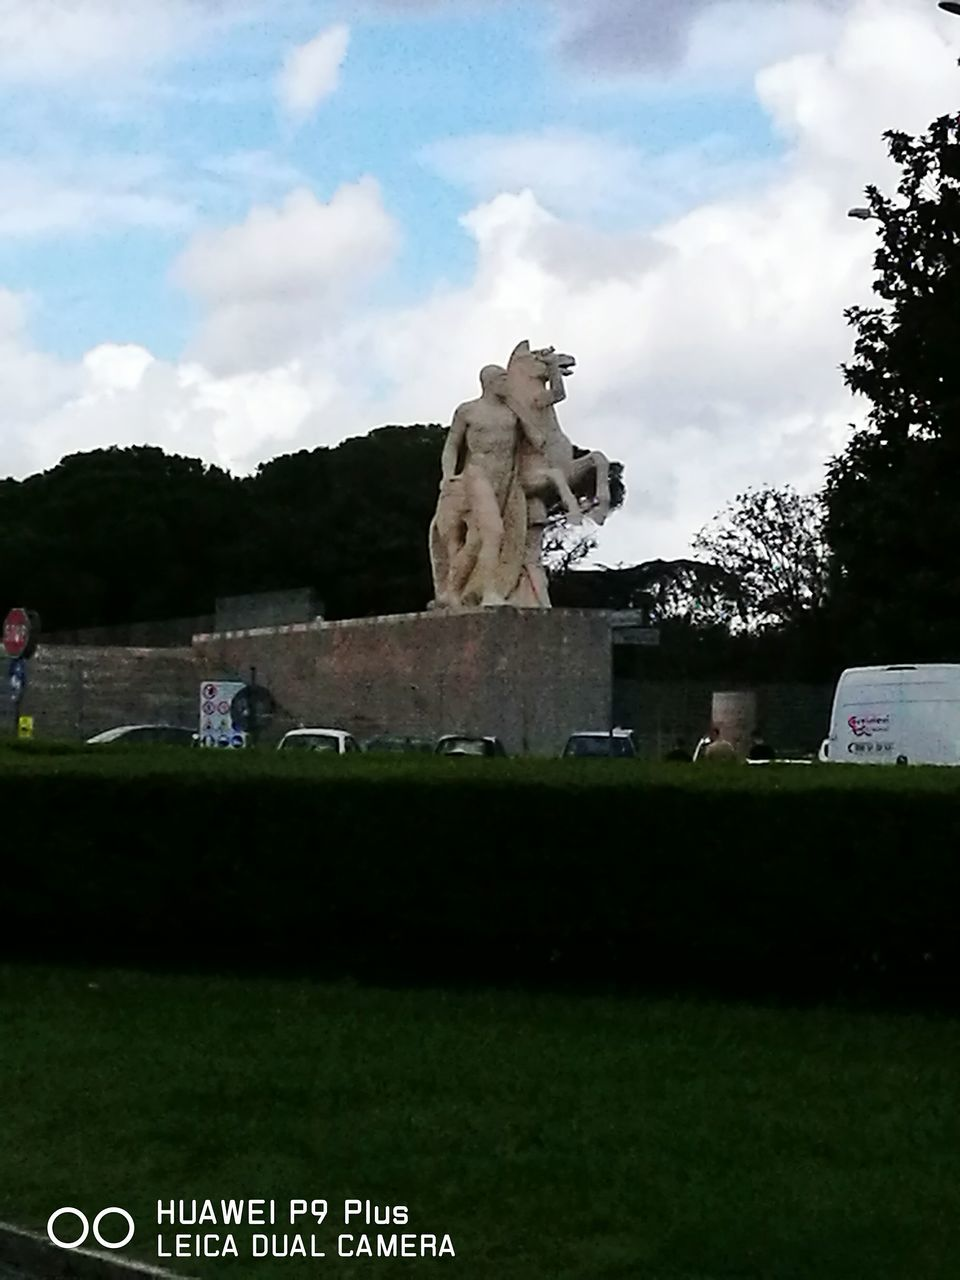 statue, sculpture, art and craft, human representation, sky, park - man made space, tree, cloud - sky, grass, outdoors, day, no people, architecture, nature, mammal